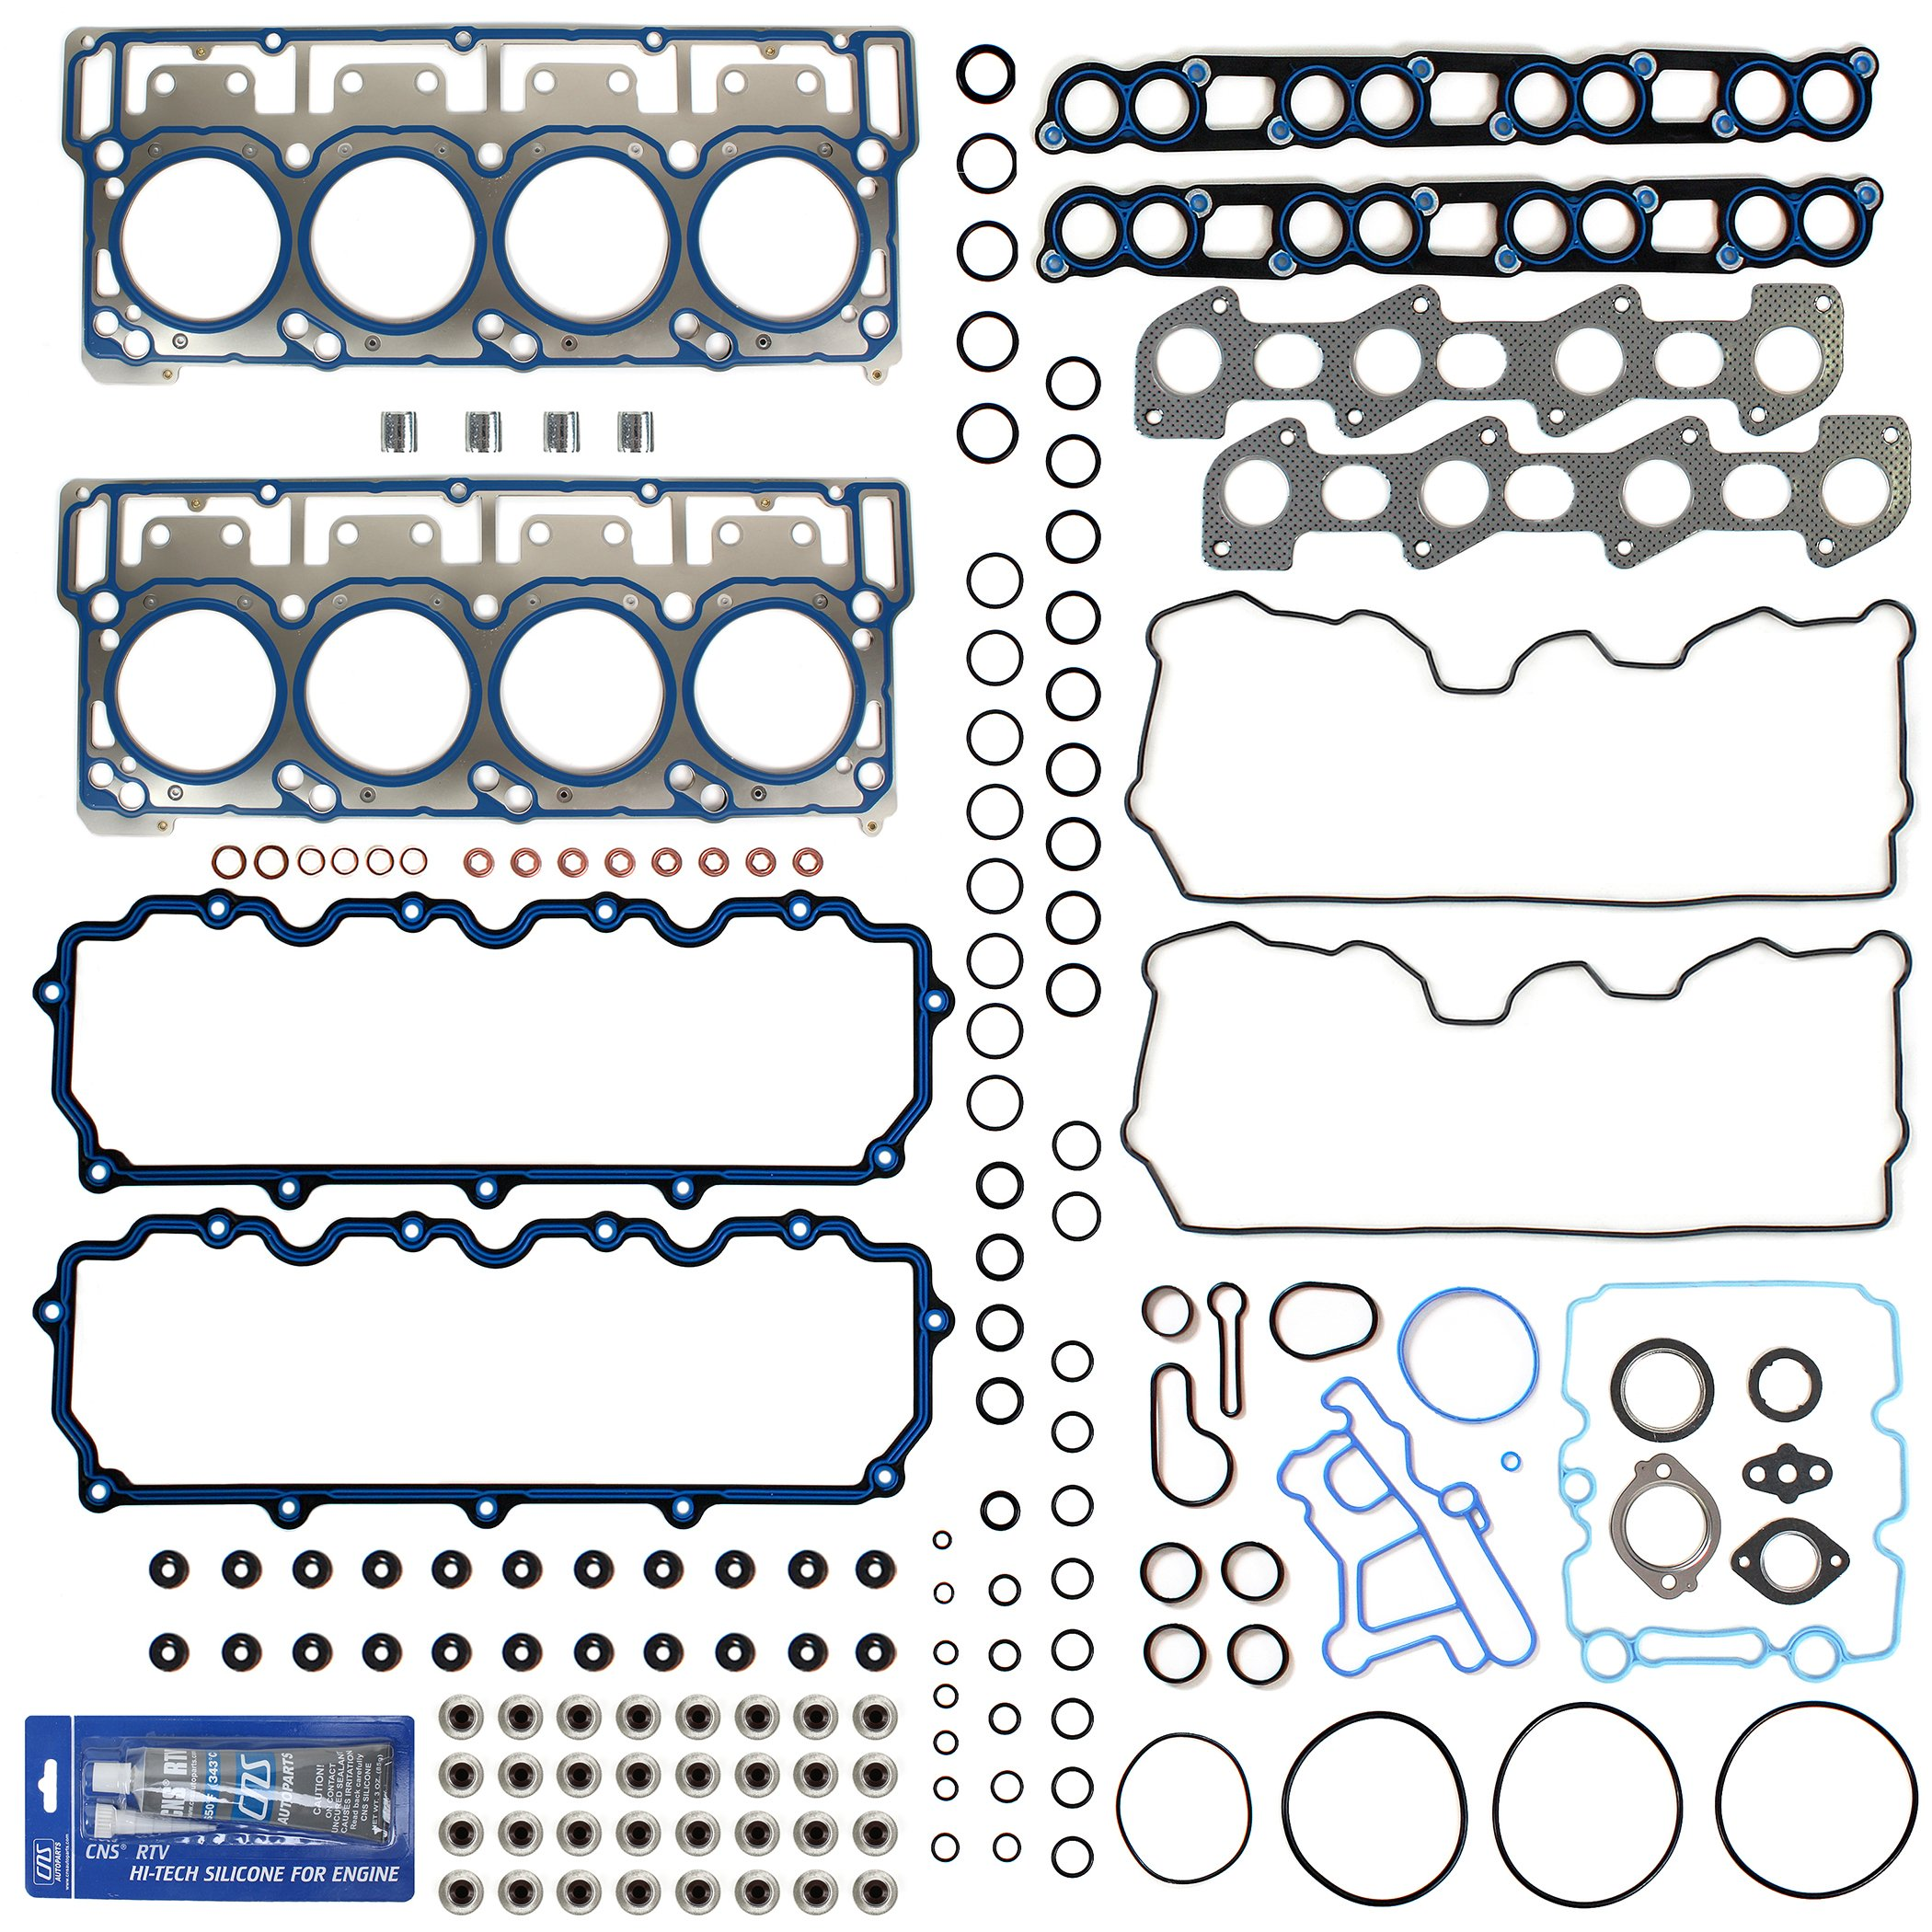 New MLS Cylinder Head Gasket Set (18mm) w/RTV Silicone for 03-10 Ford 6.0L PowerStroke Diesel Turbo F-250 F-350 F-450 F-550 E350 E450 Super Duty by CNS EngineParts